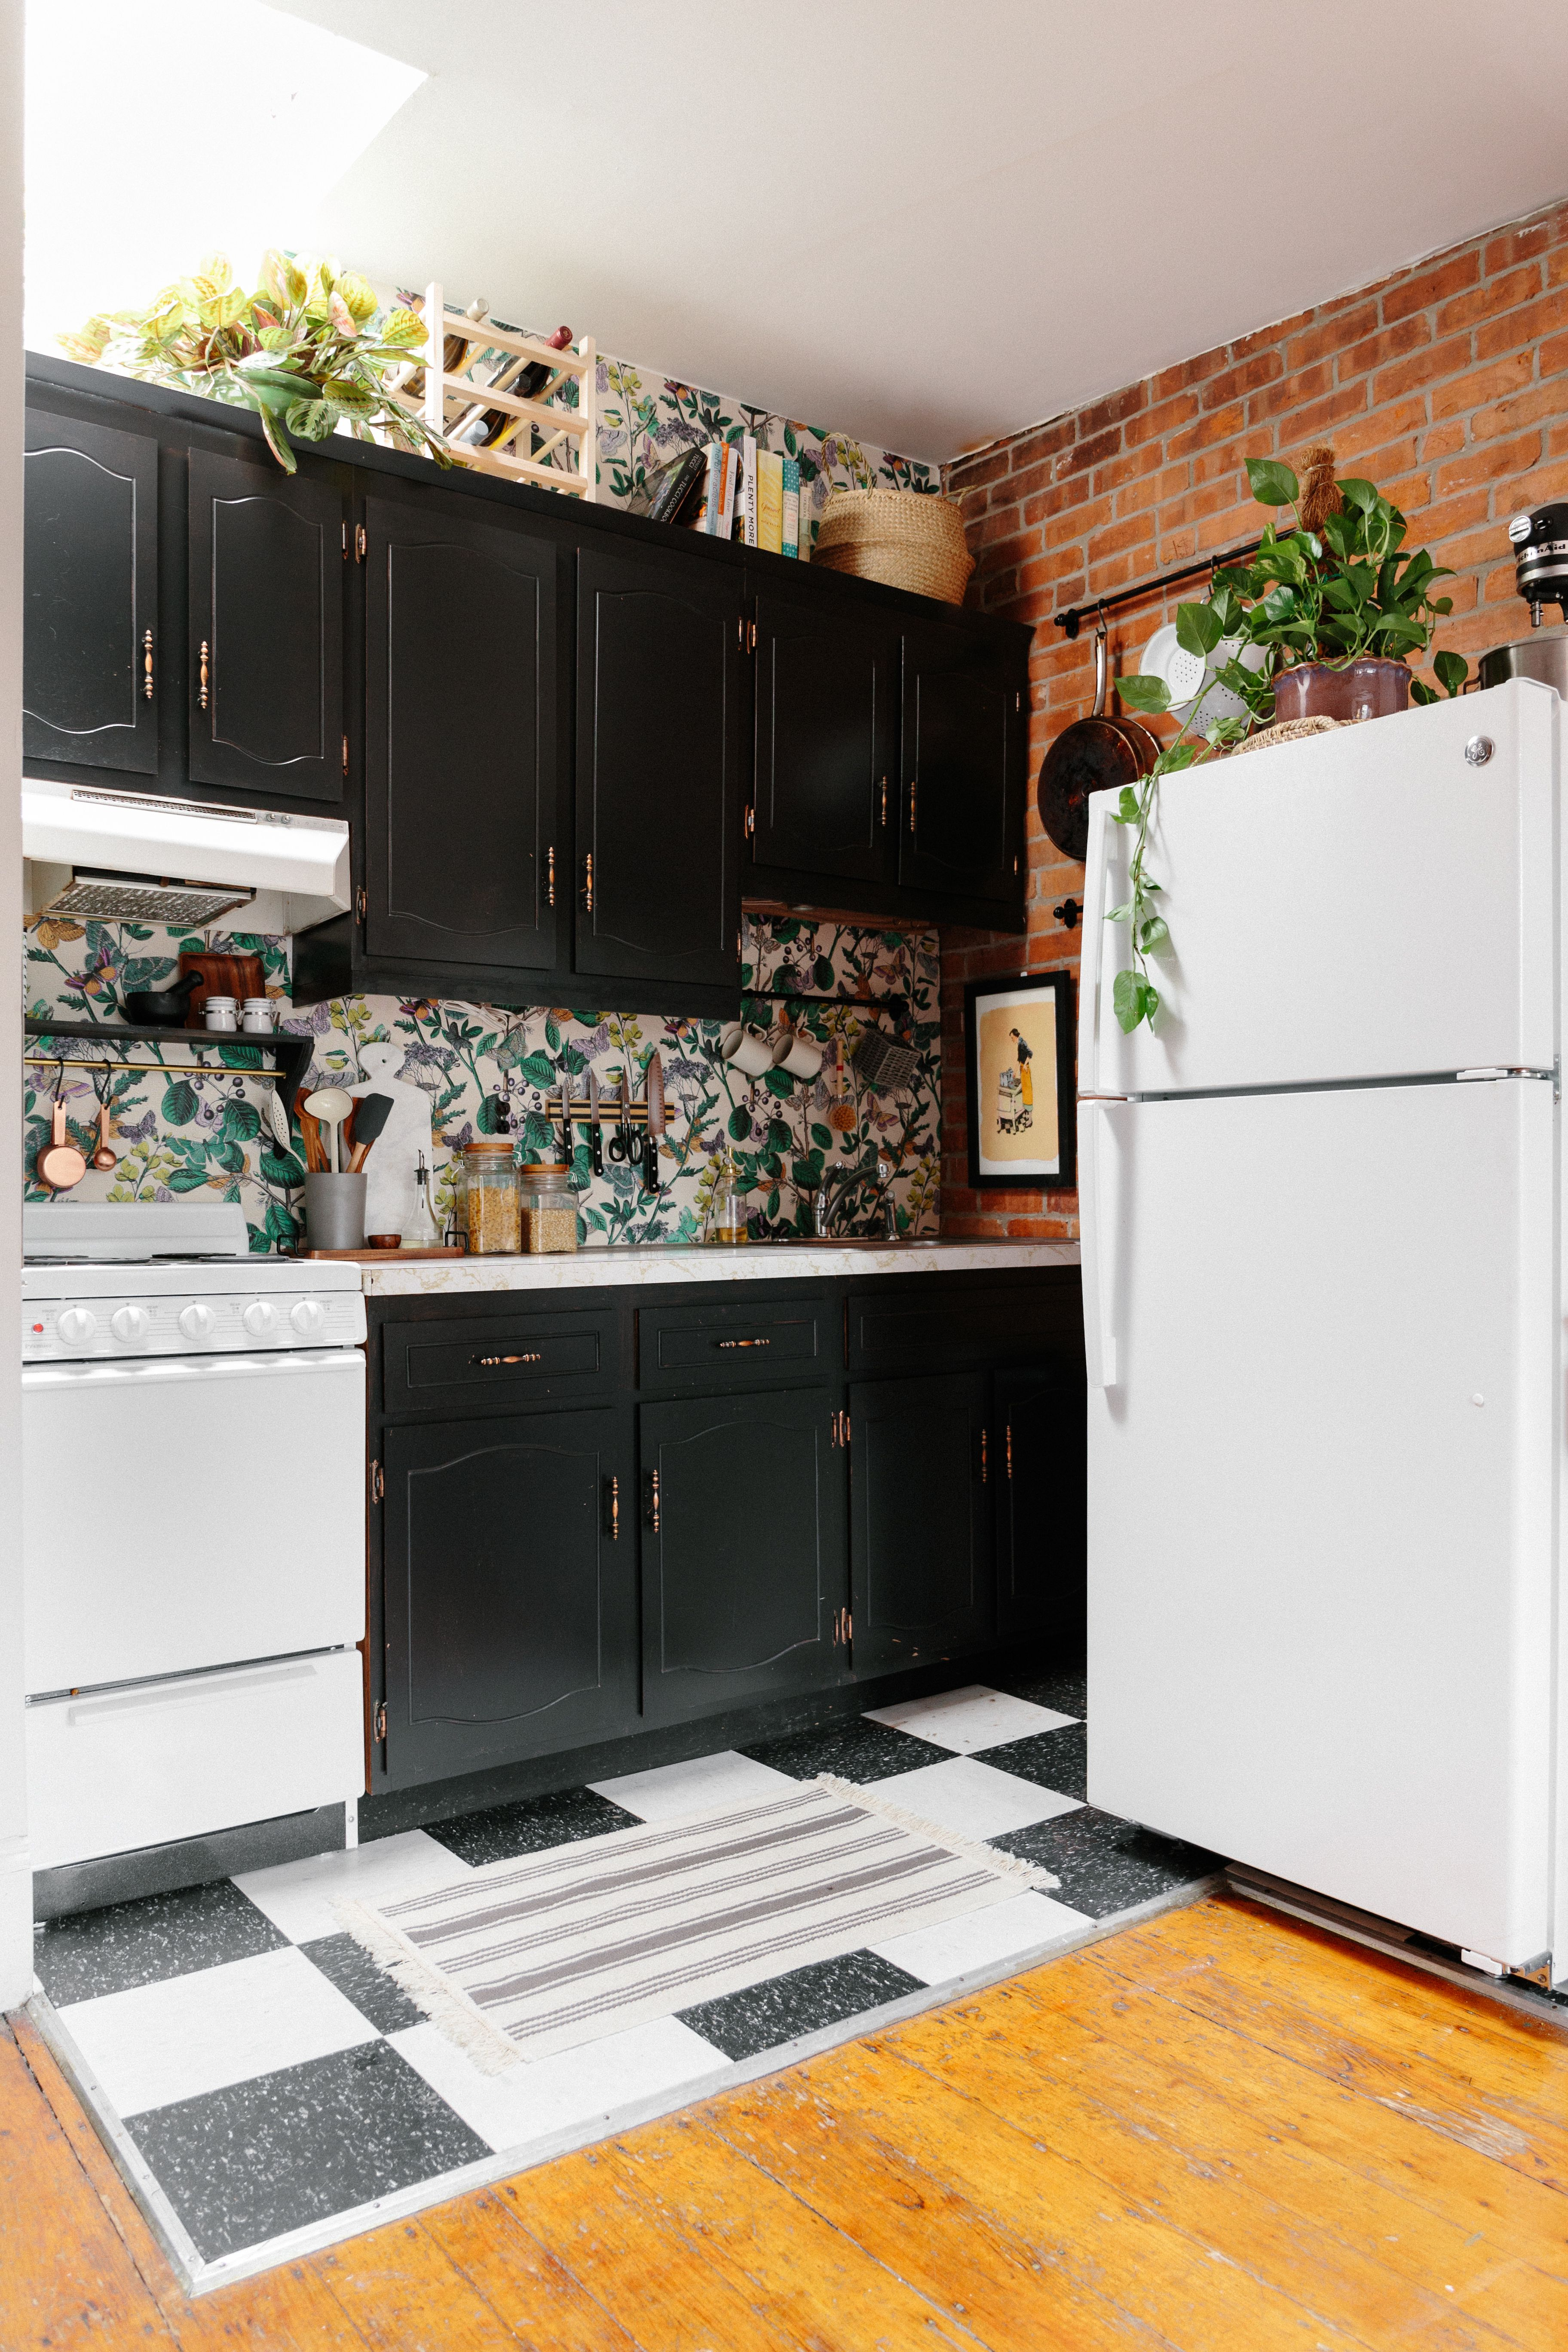 Tara S Budget Al Remodel 300 Later This Kitchen Is No Longer Recognizable